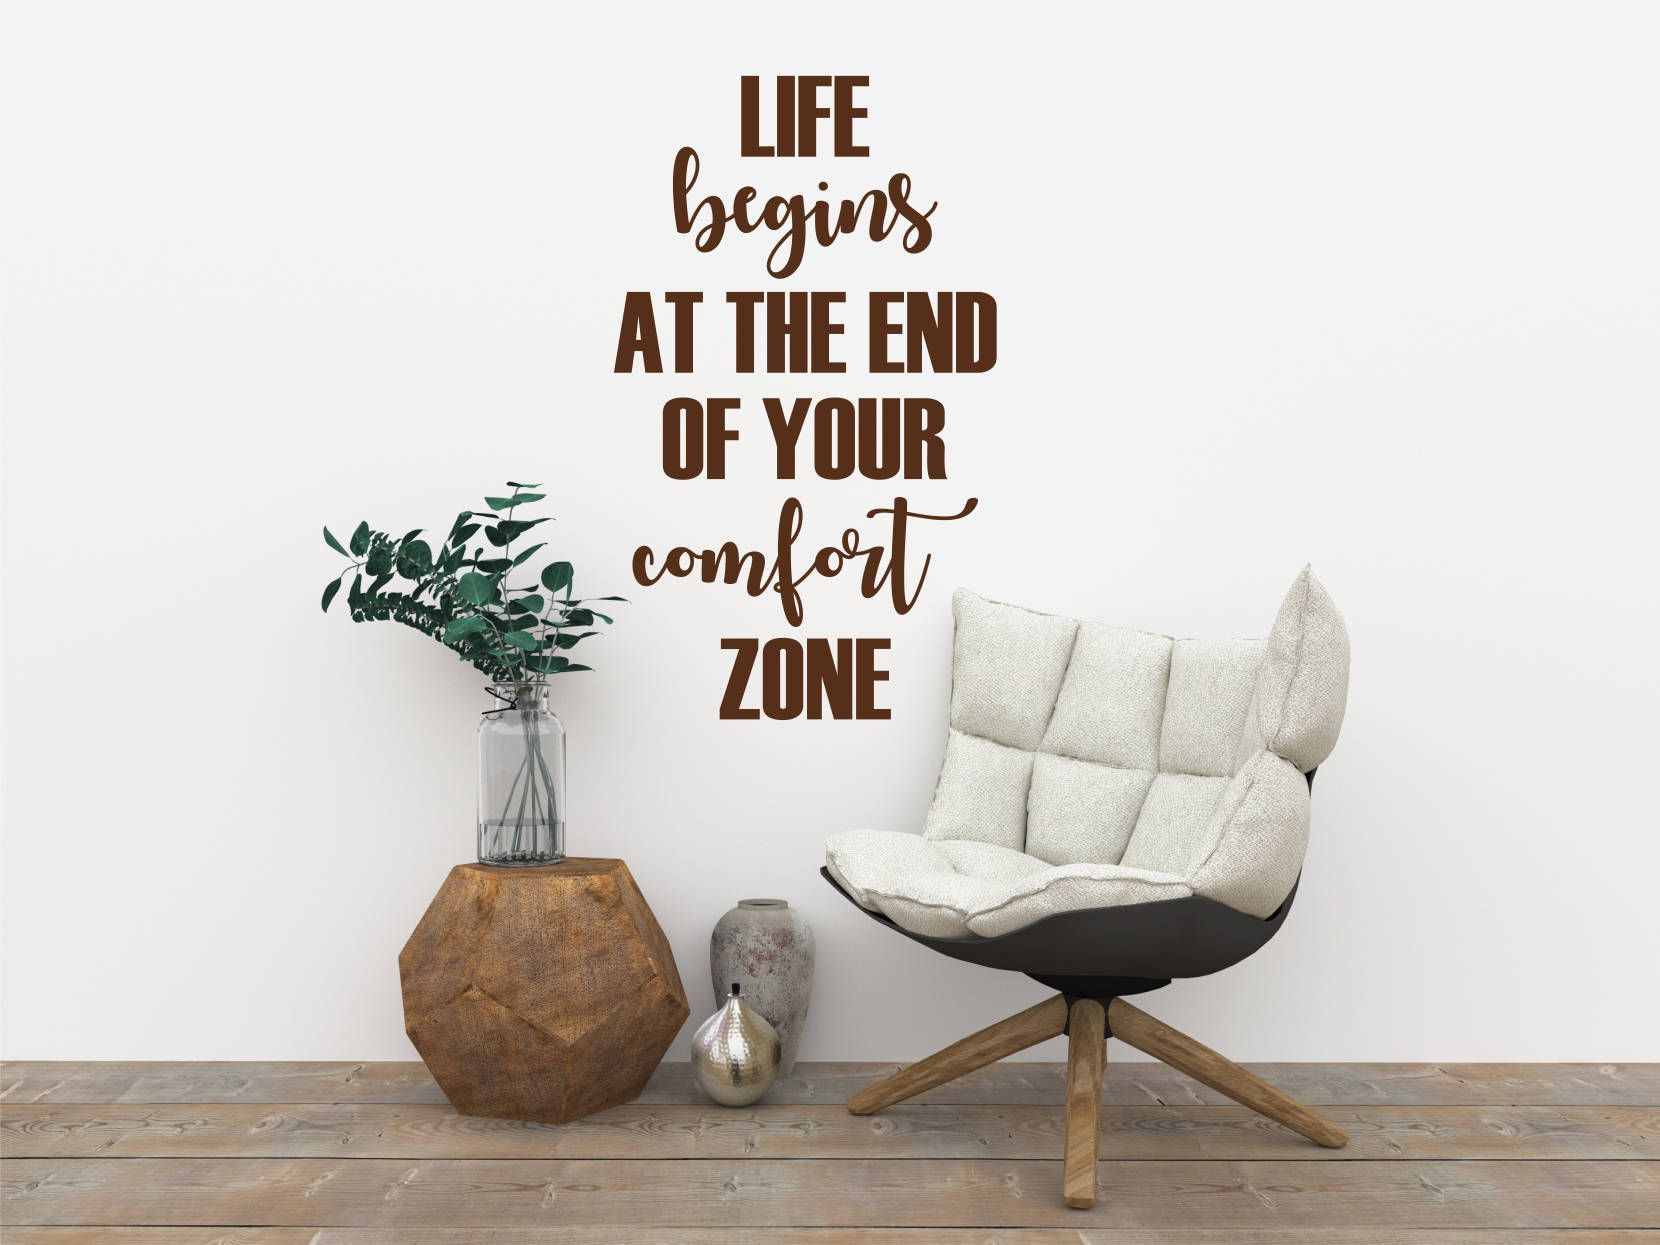 Life begins at the end of your comport zone Motivational quote wall decal for home, bedroom, office, gym   Large  wall art lettering